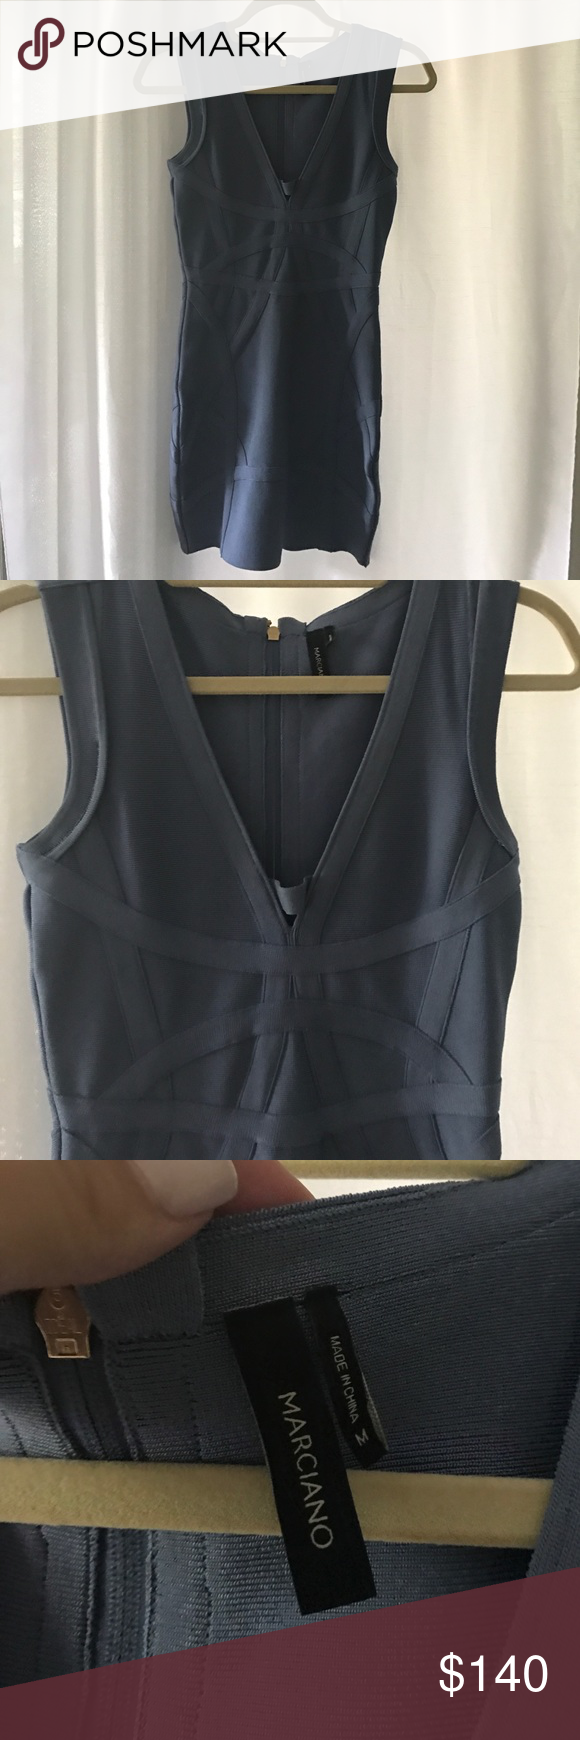 Marciano Bandage Dress Marciano classic bandage dress. Very high quality if you know what brand Marciano is. Only worn once for birthday dinner. Dry cleaned and ready to be taken home!! Marciano Dresses Mini